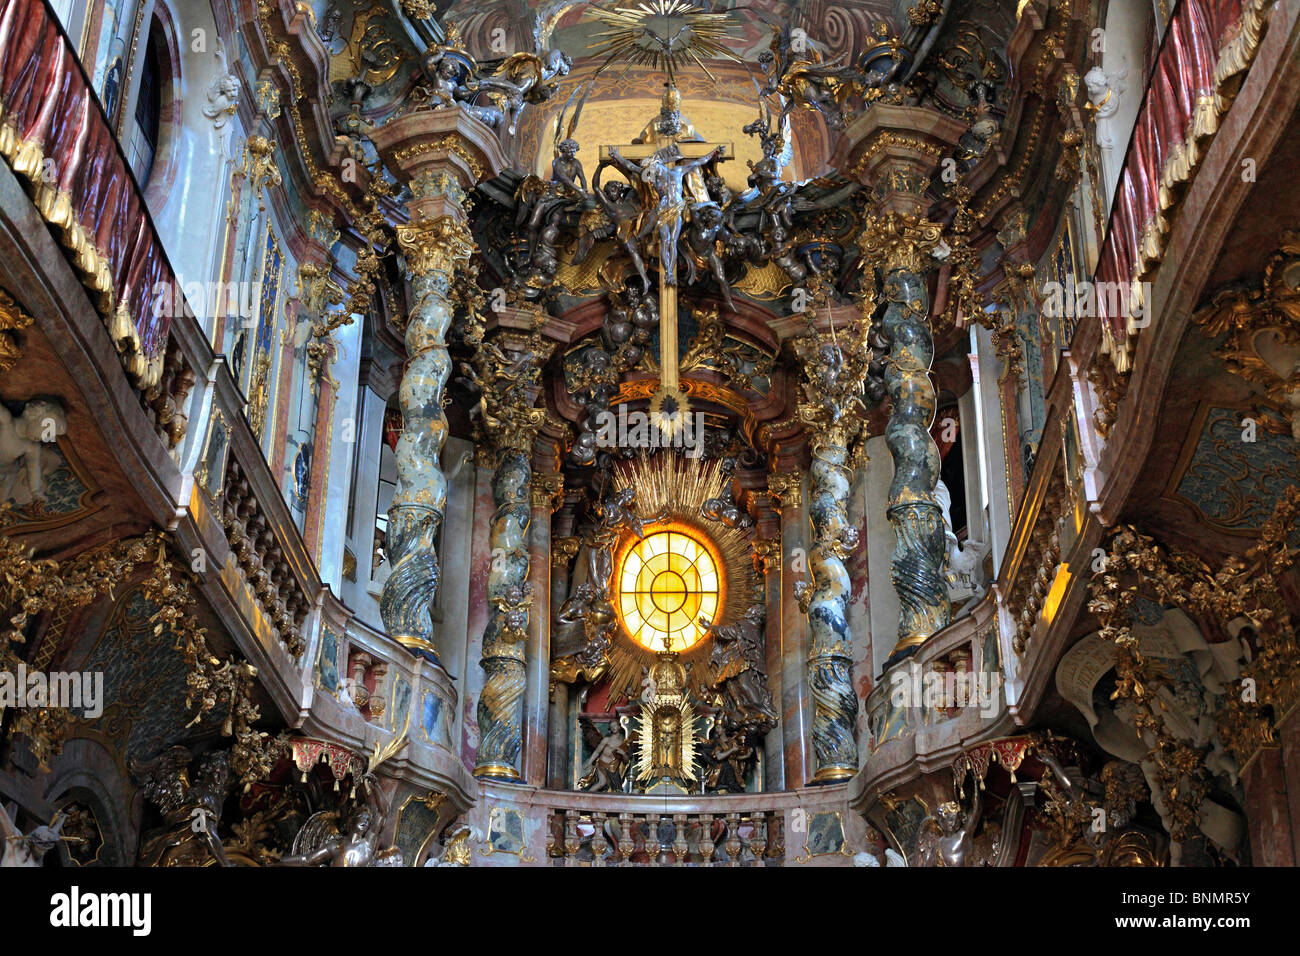 Germany German Europe European Western Architecture Building Munich Bavaria Art Arts Church Religious Interior